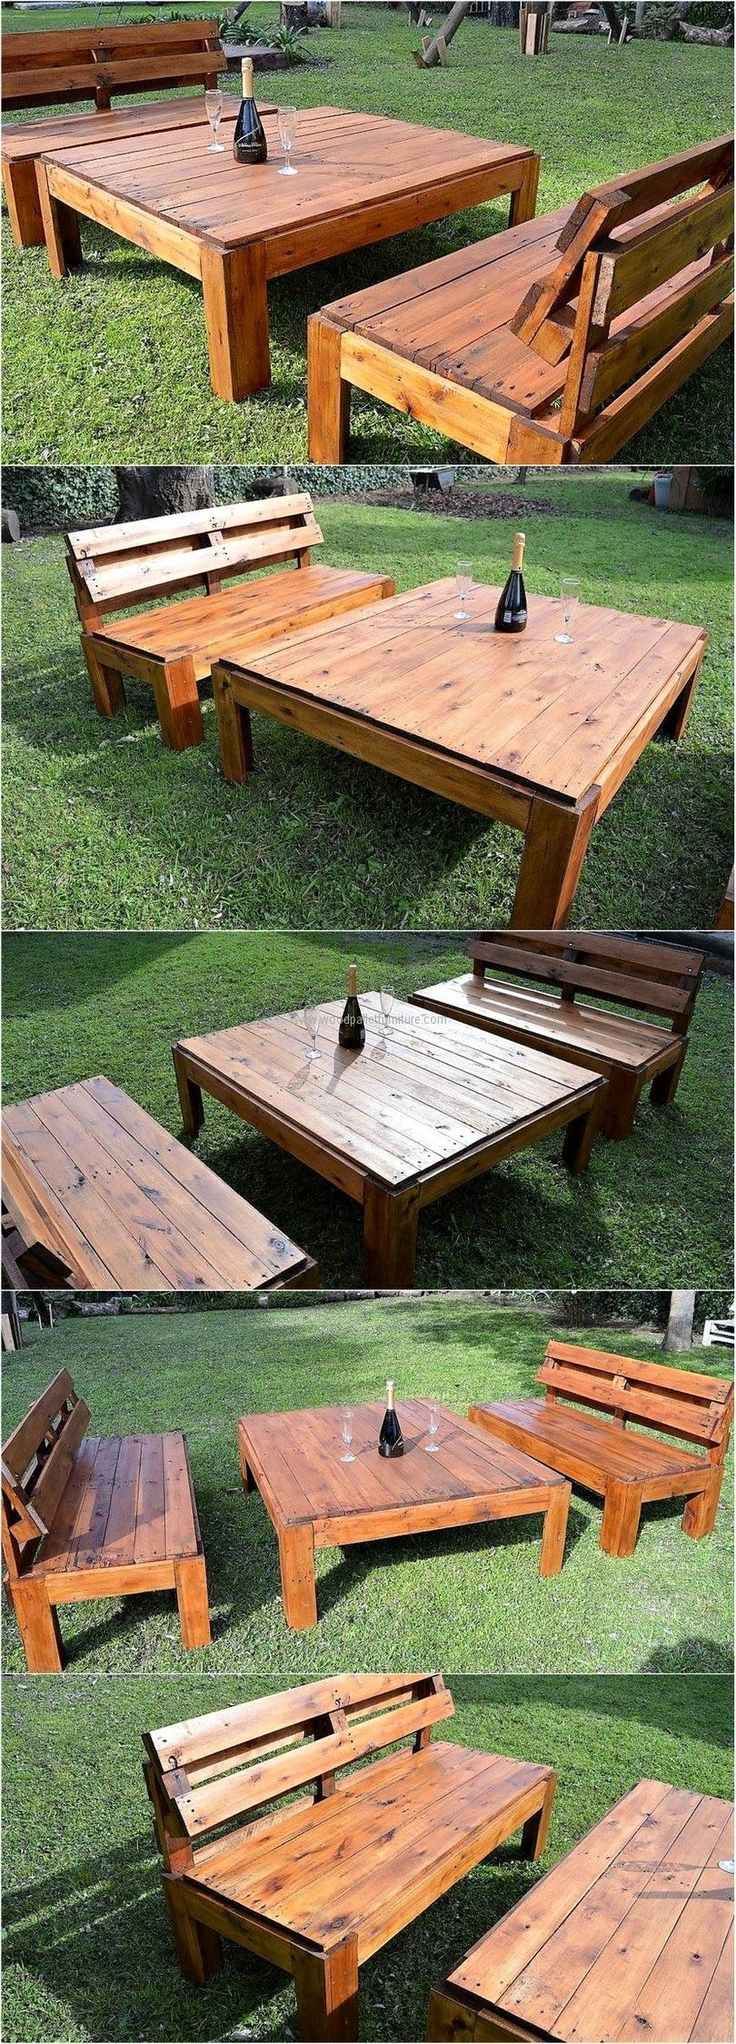 pallet outdoor furniture plans. awesome pallet wooden furniture plans outdoor